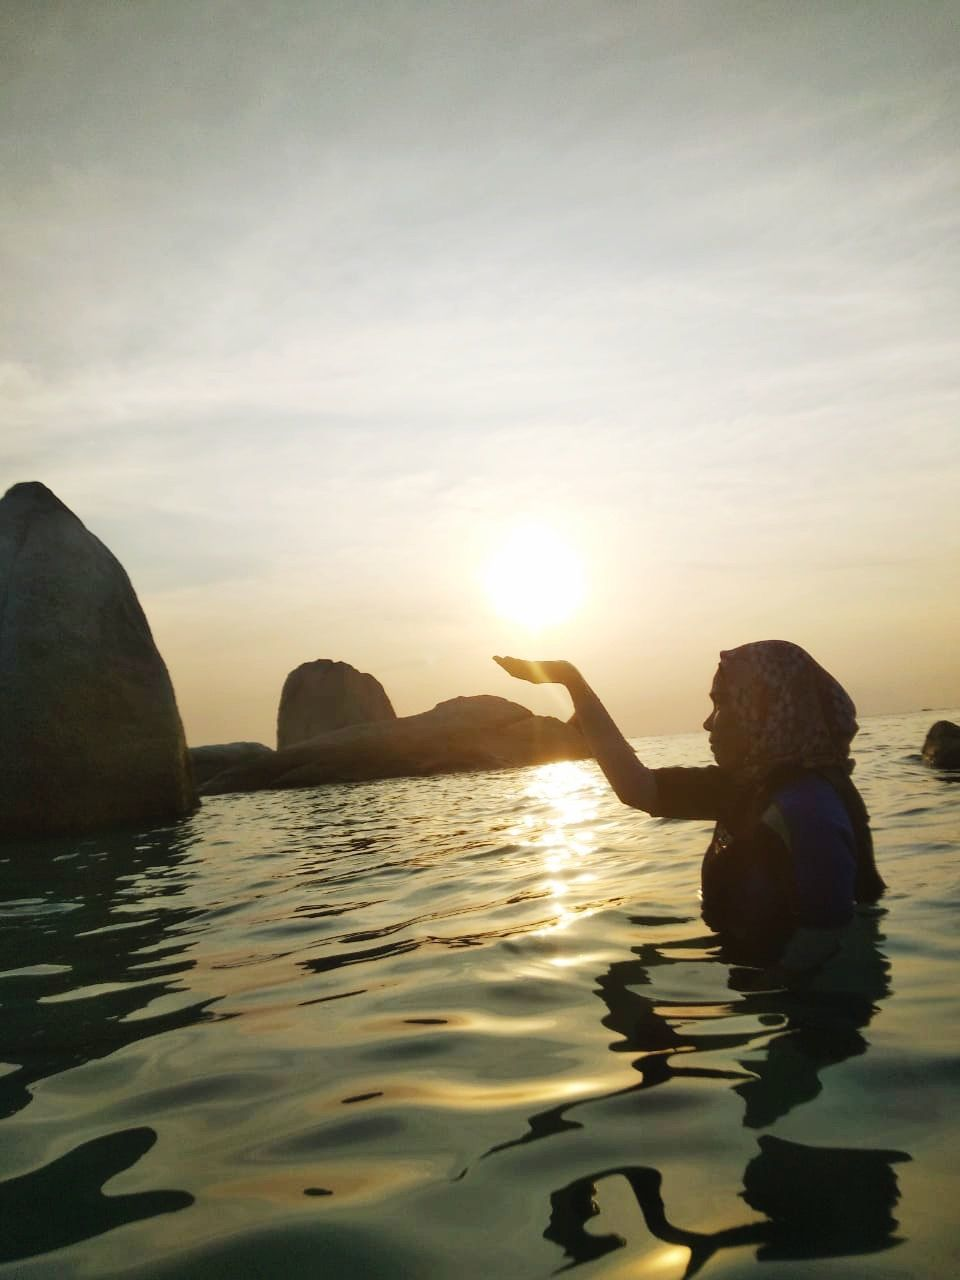 water, sky, beauty in nature, sunset, real people, rock, sea, nature, waterfront, rock - object, sun, tranquility, solid, one person, tranquil scene, scenics - nature, women, adult, leisure activity, outdoors